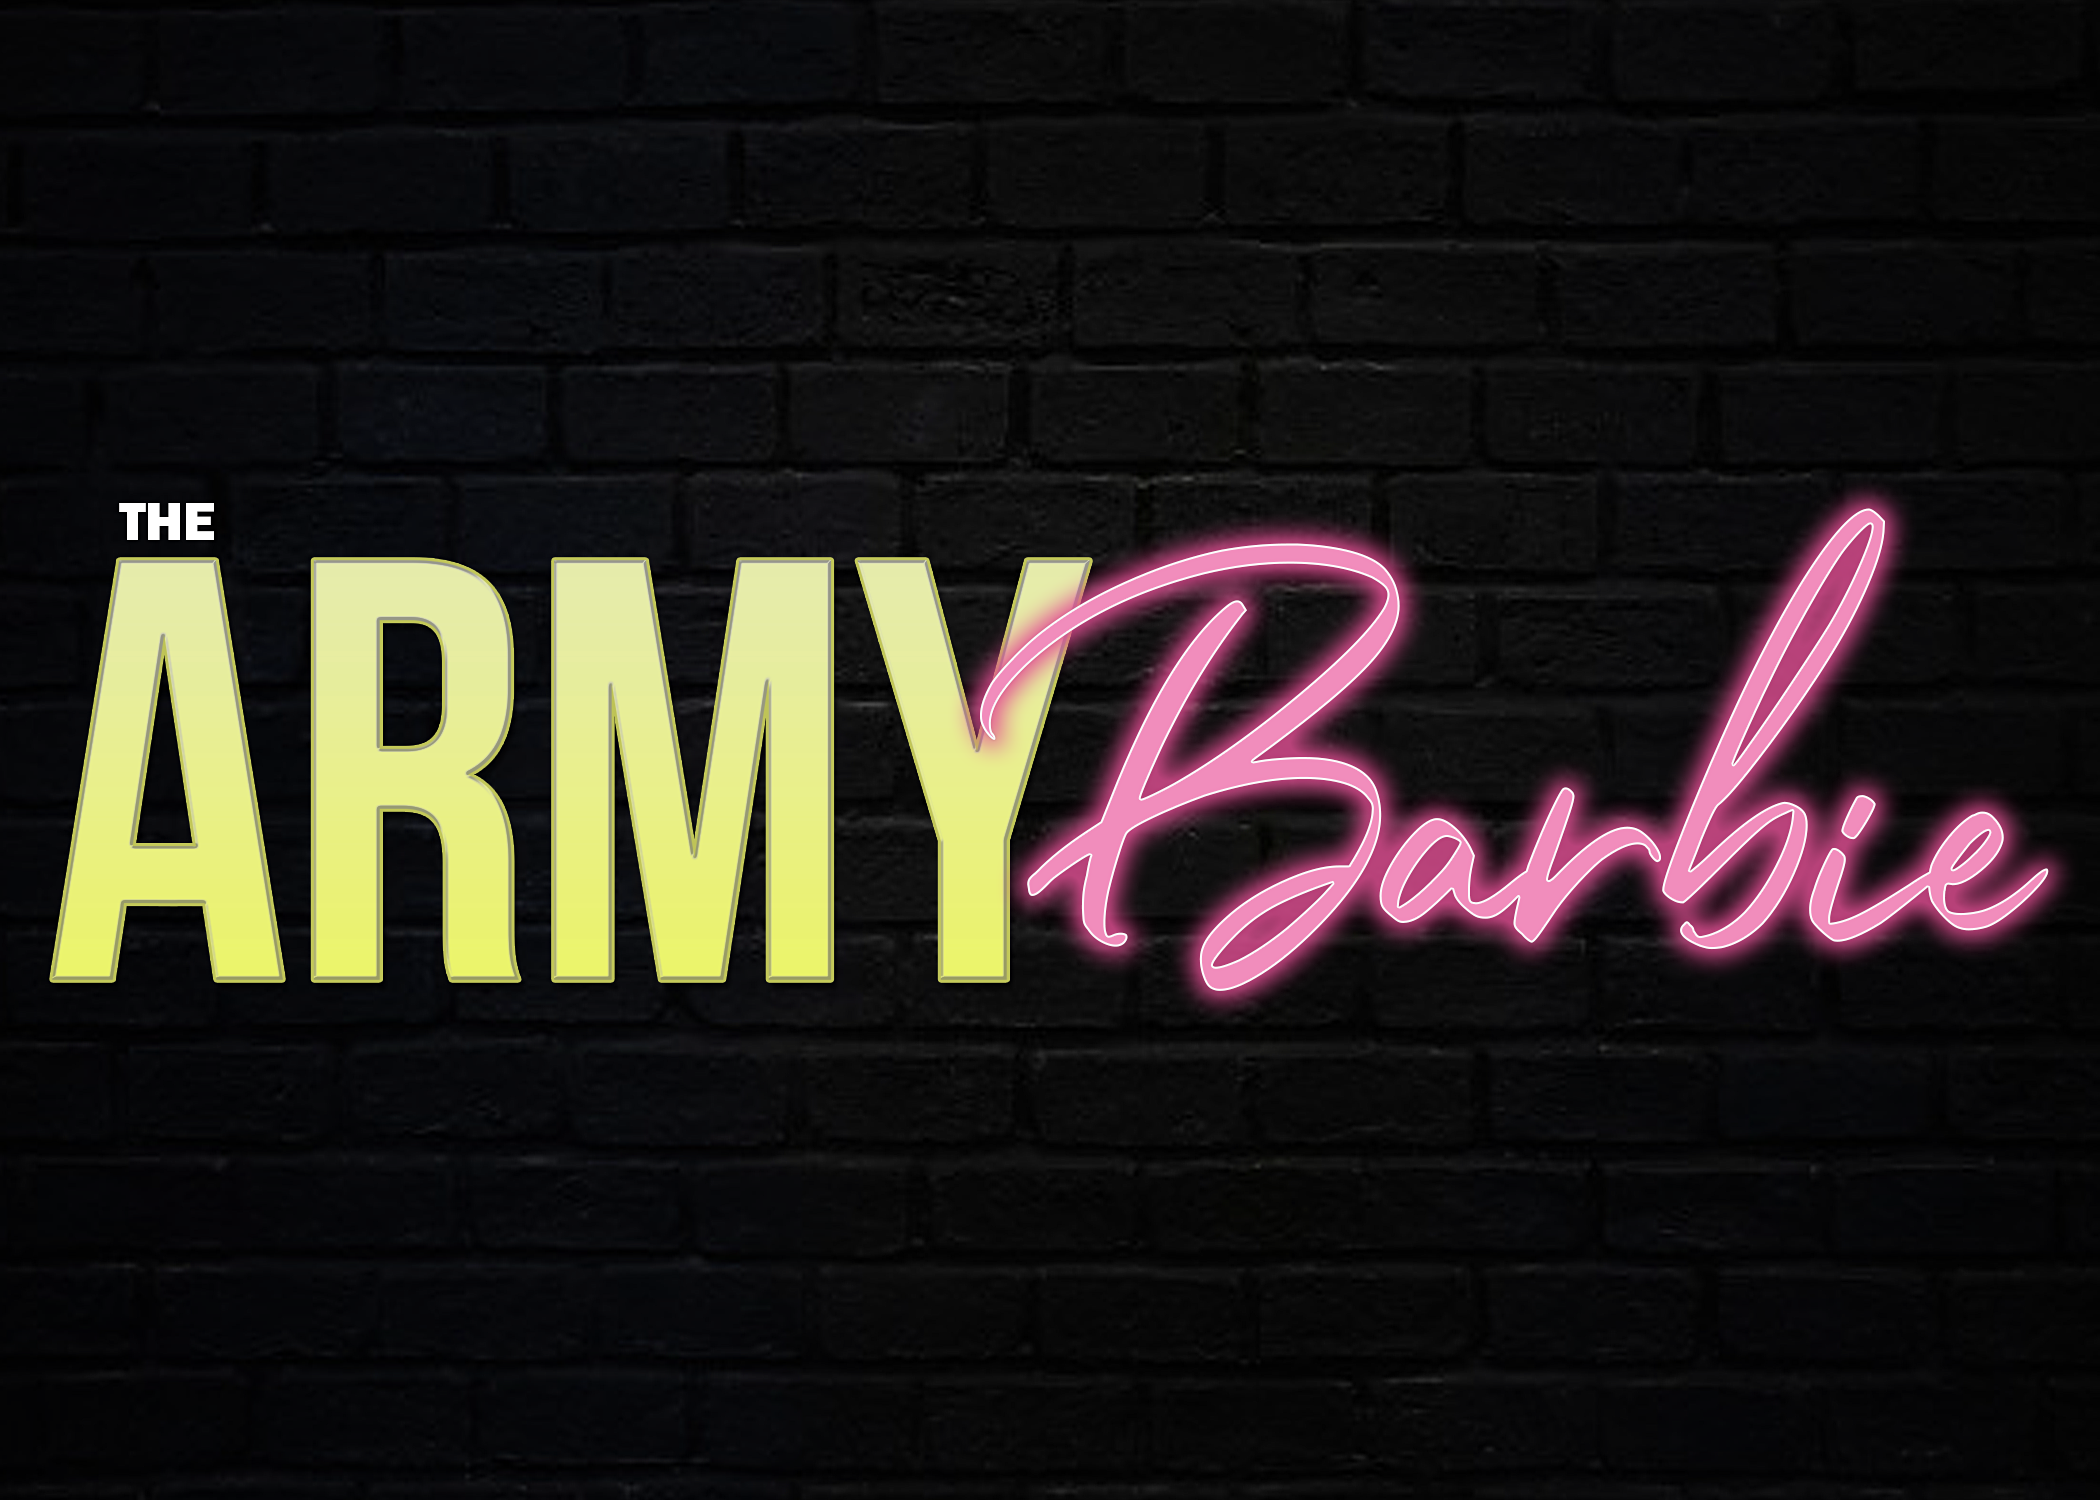 The Army Barbie Logo - Brick Background.